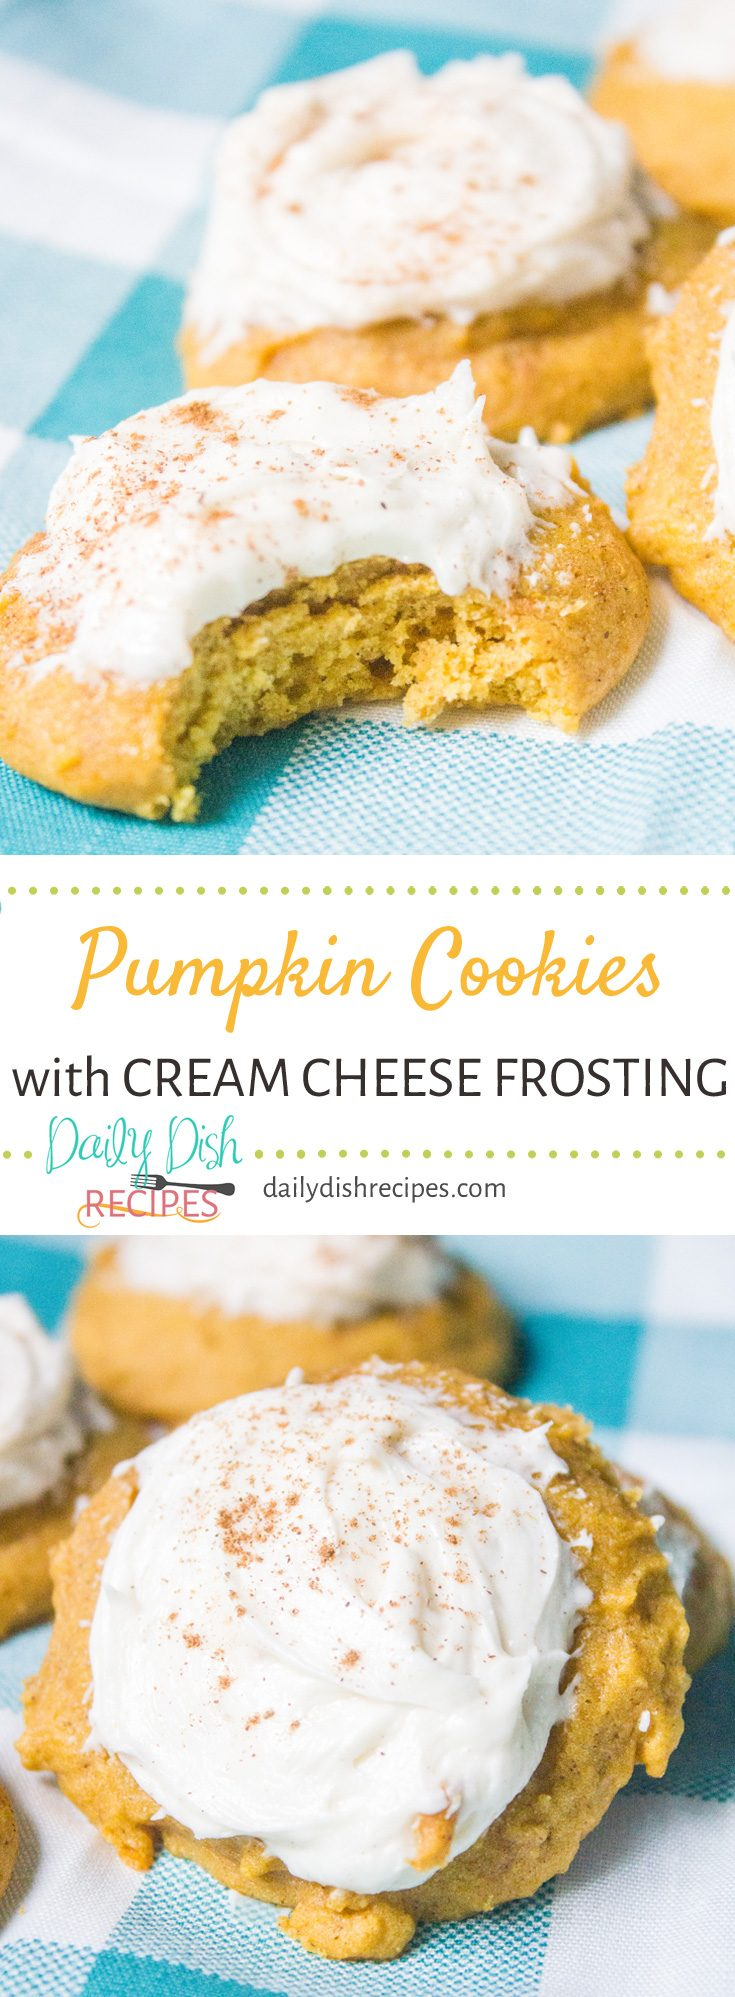 Moist, delicious Pumpkin cookies with cream cheese frosting are the perfect cookie for your fall table. Everyone loves these and they go fast so make plenty!